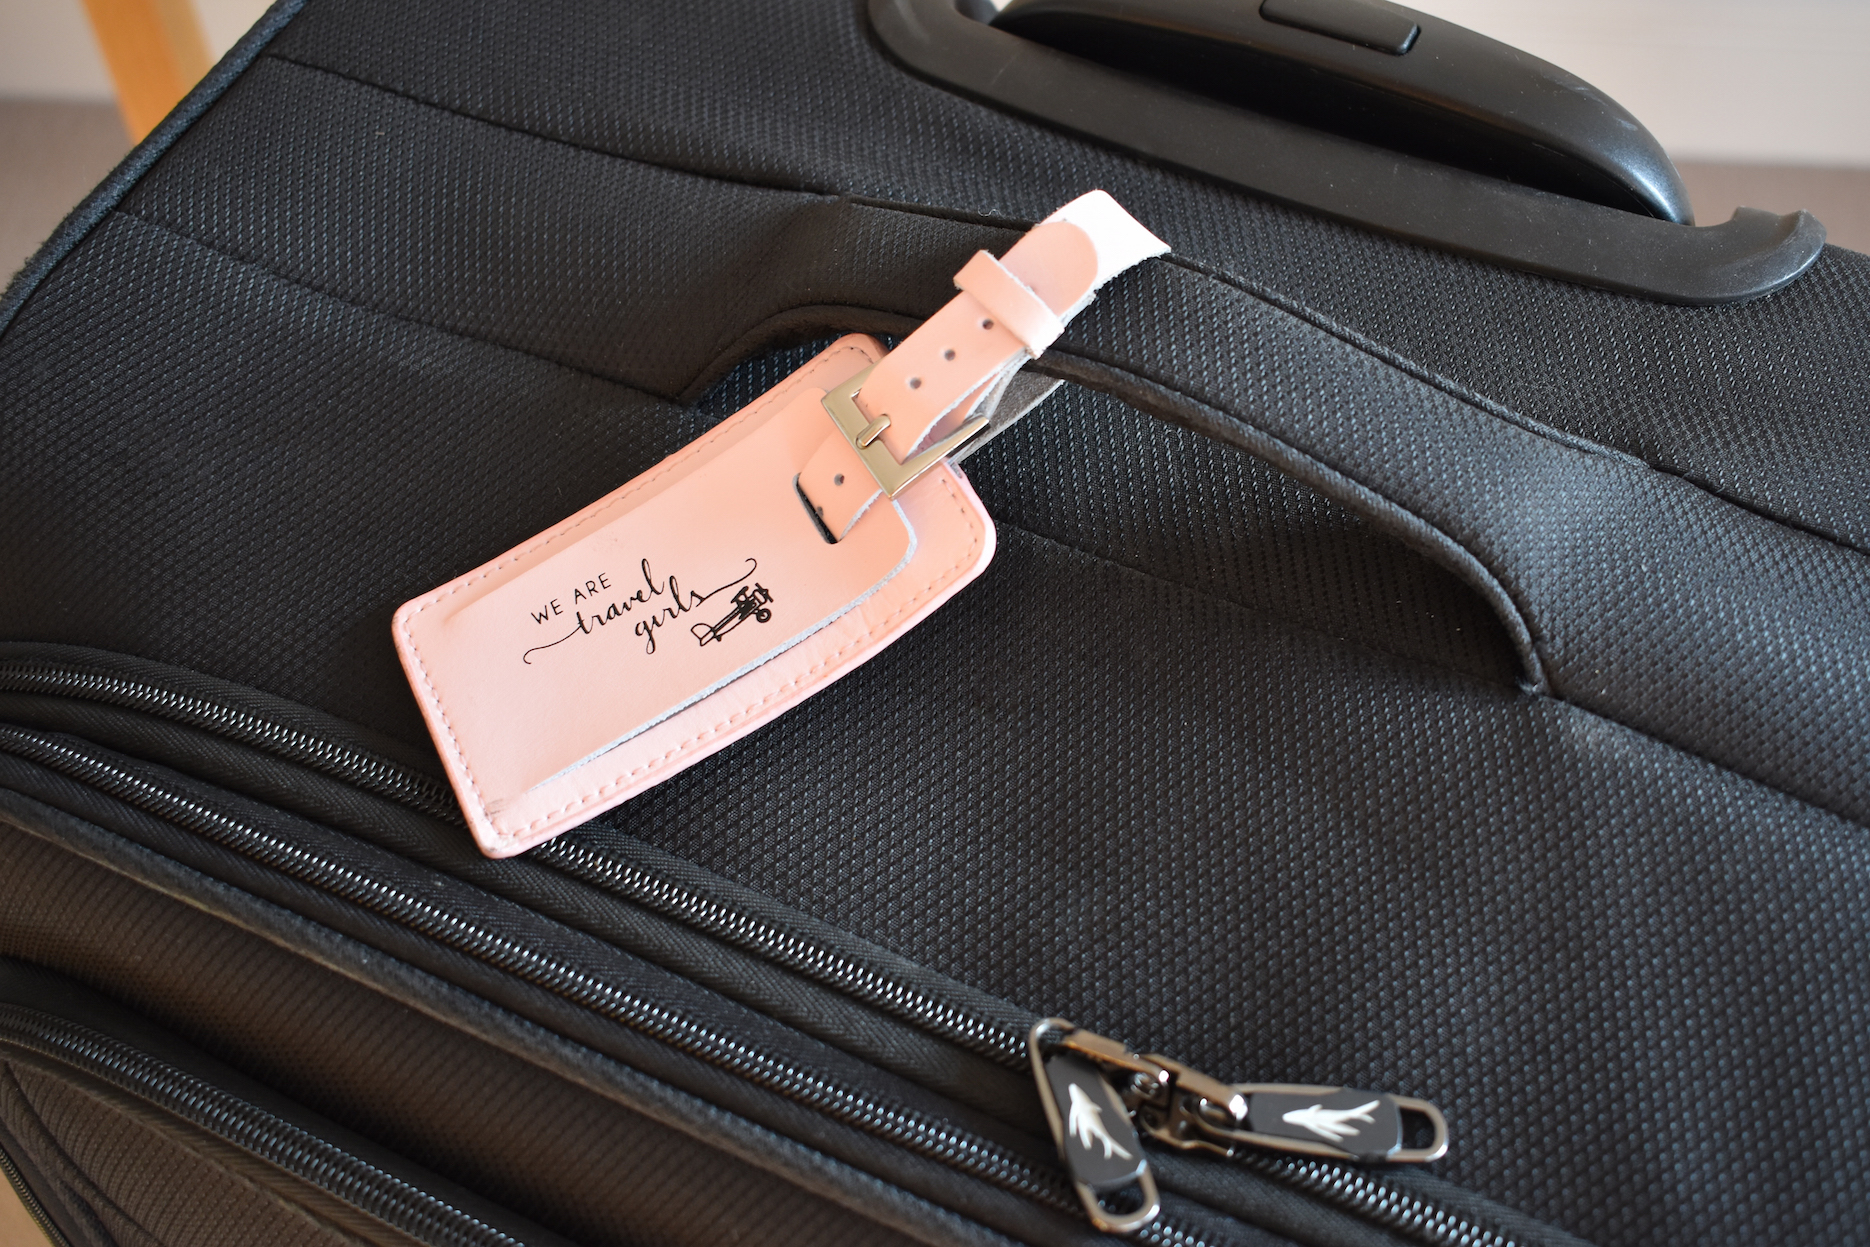 WE ARE TRAVEL GIRLS™ LUGGAGE TAG   We Are Travel Girls